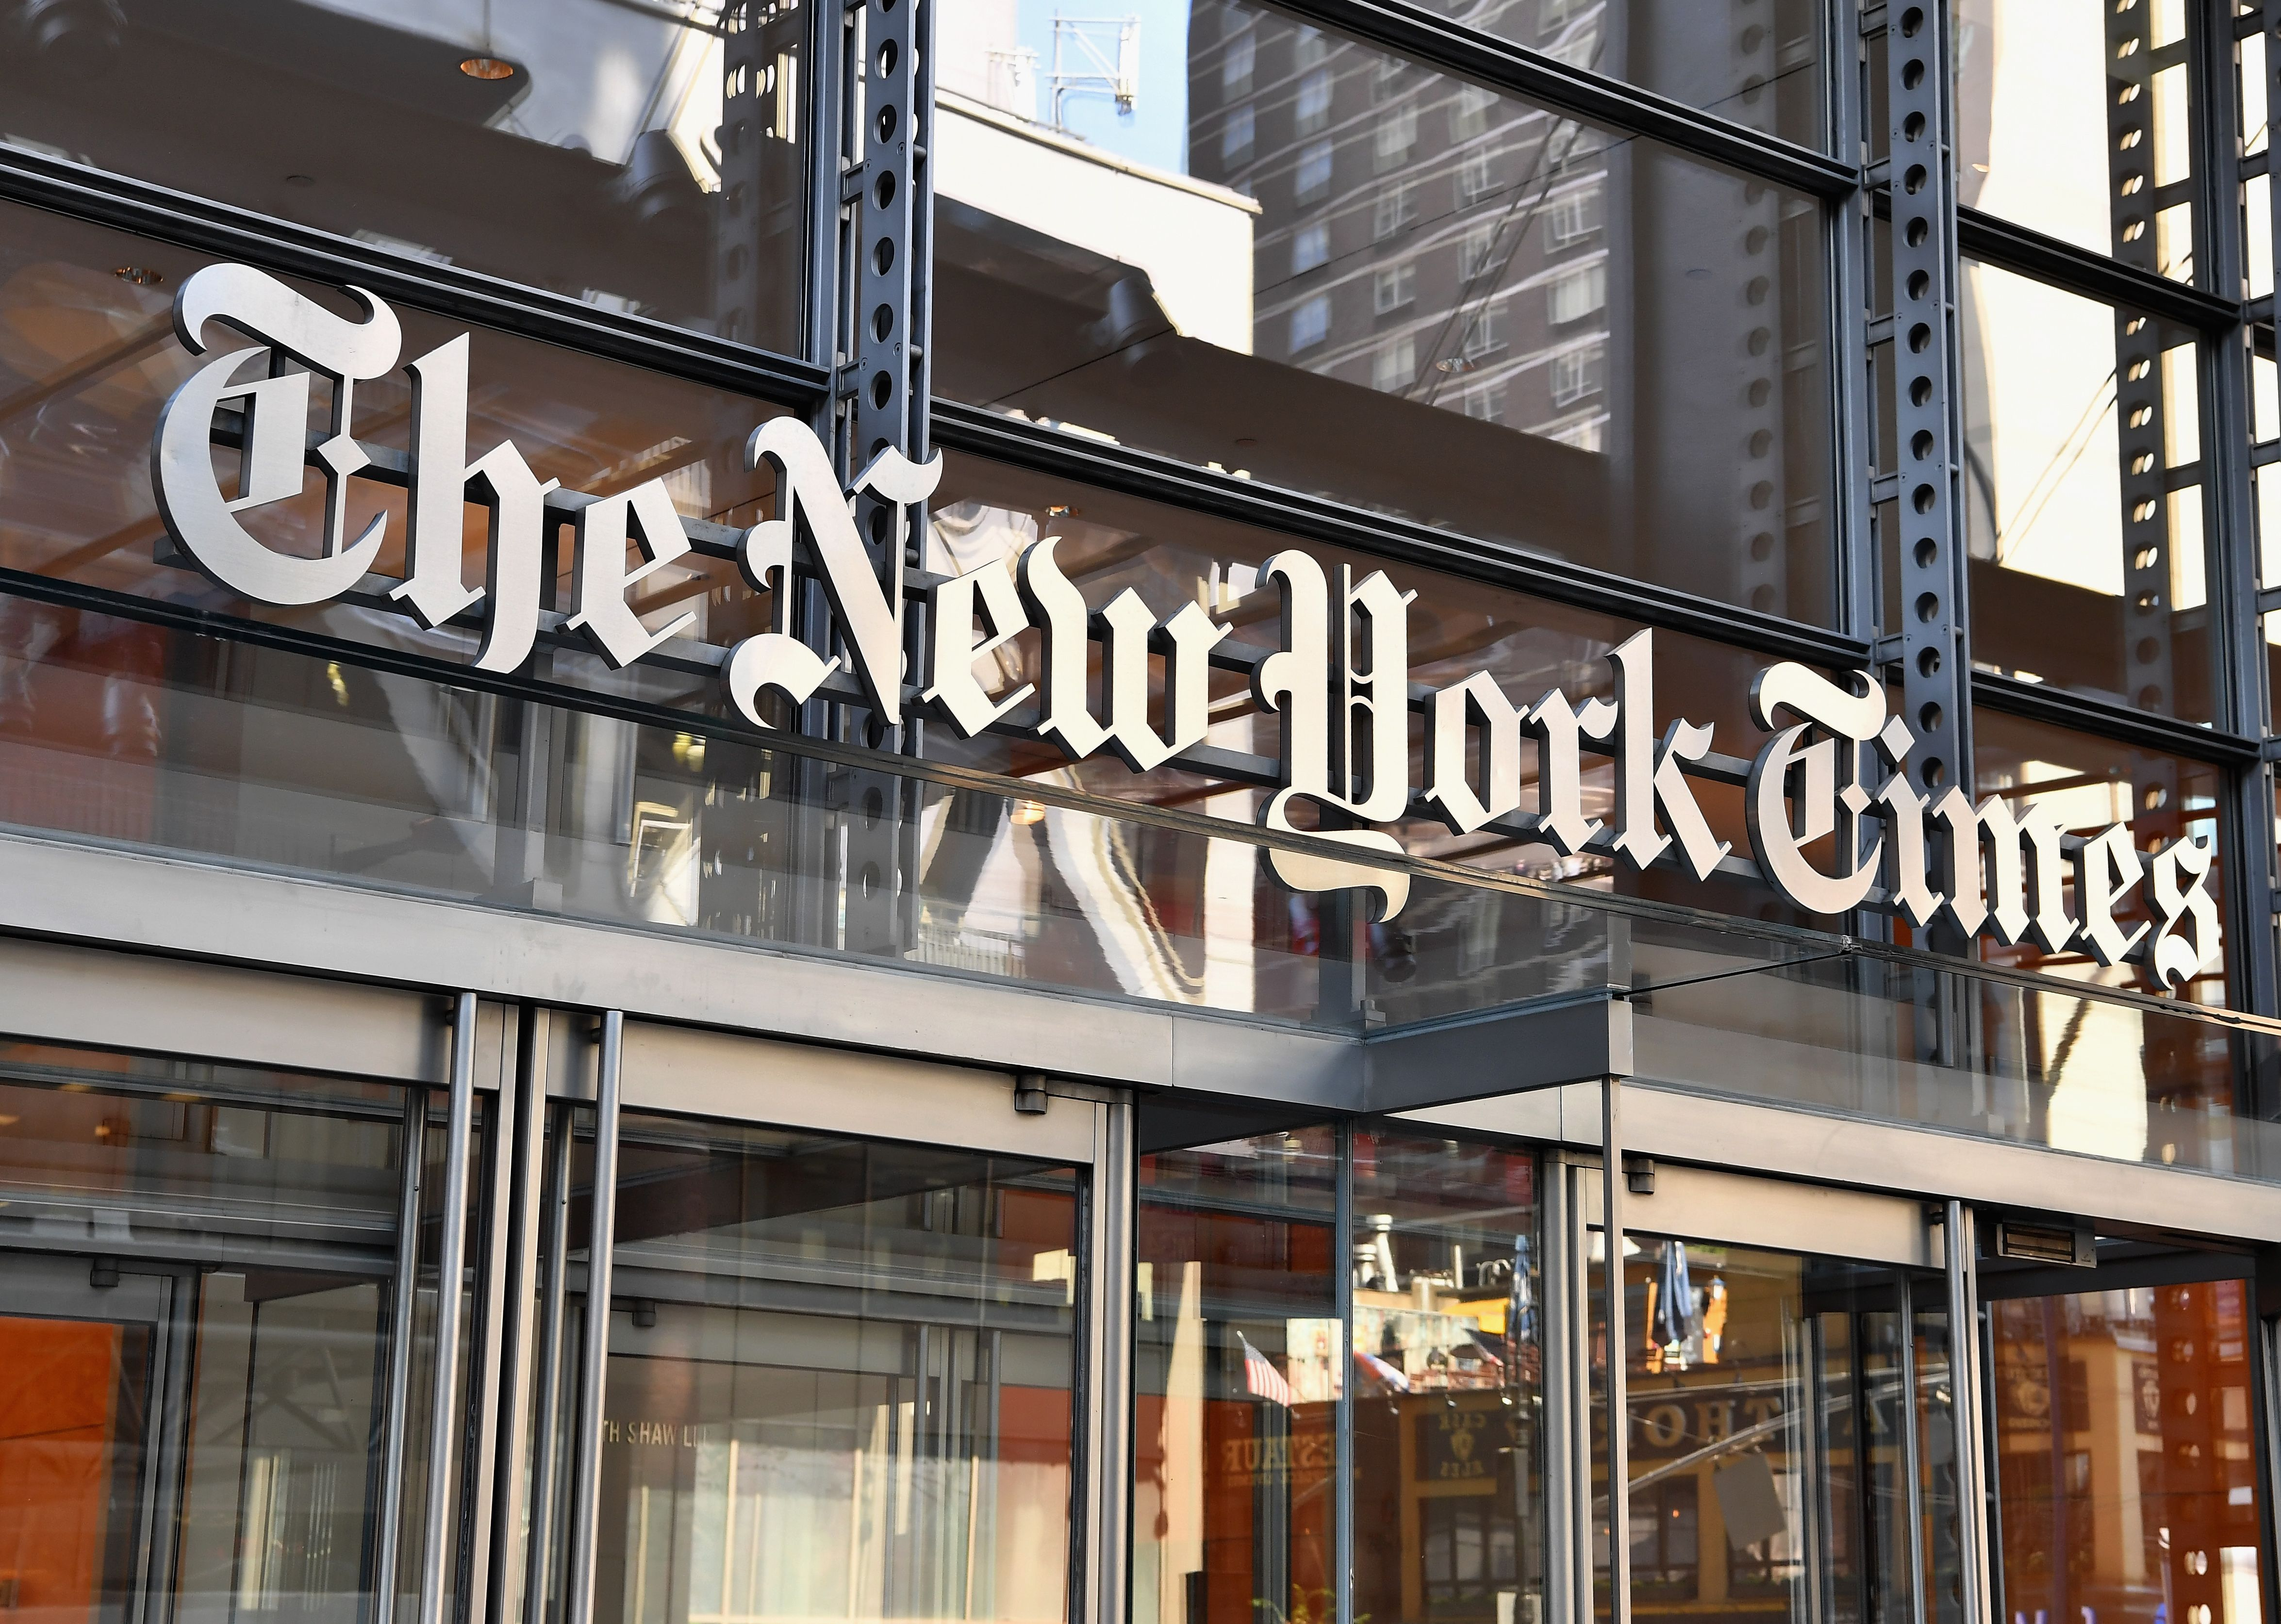 The New York Times building as seen on September 6, 2018. (Angela Weiss/AFP/Getty Images)